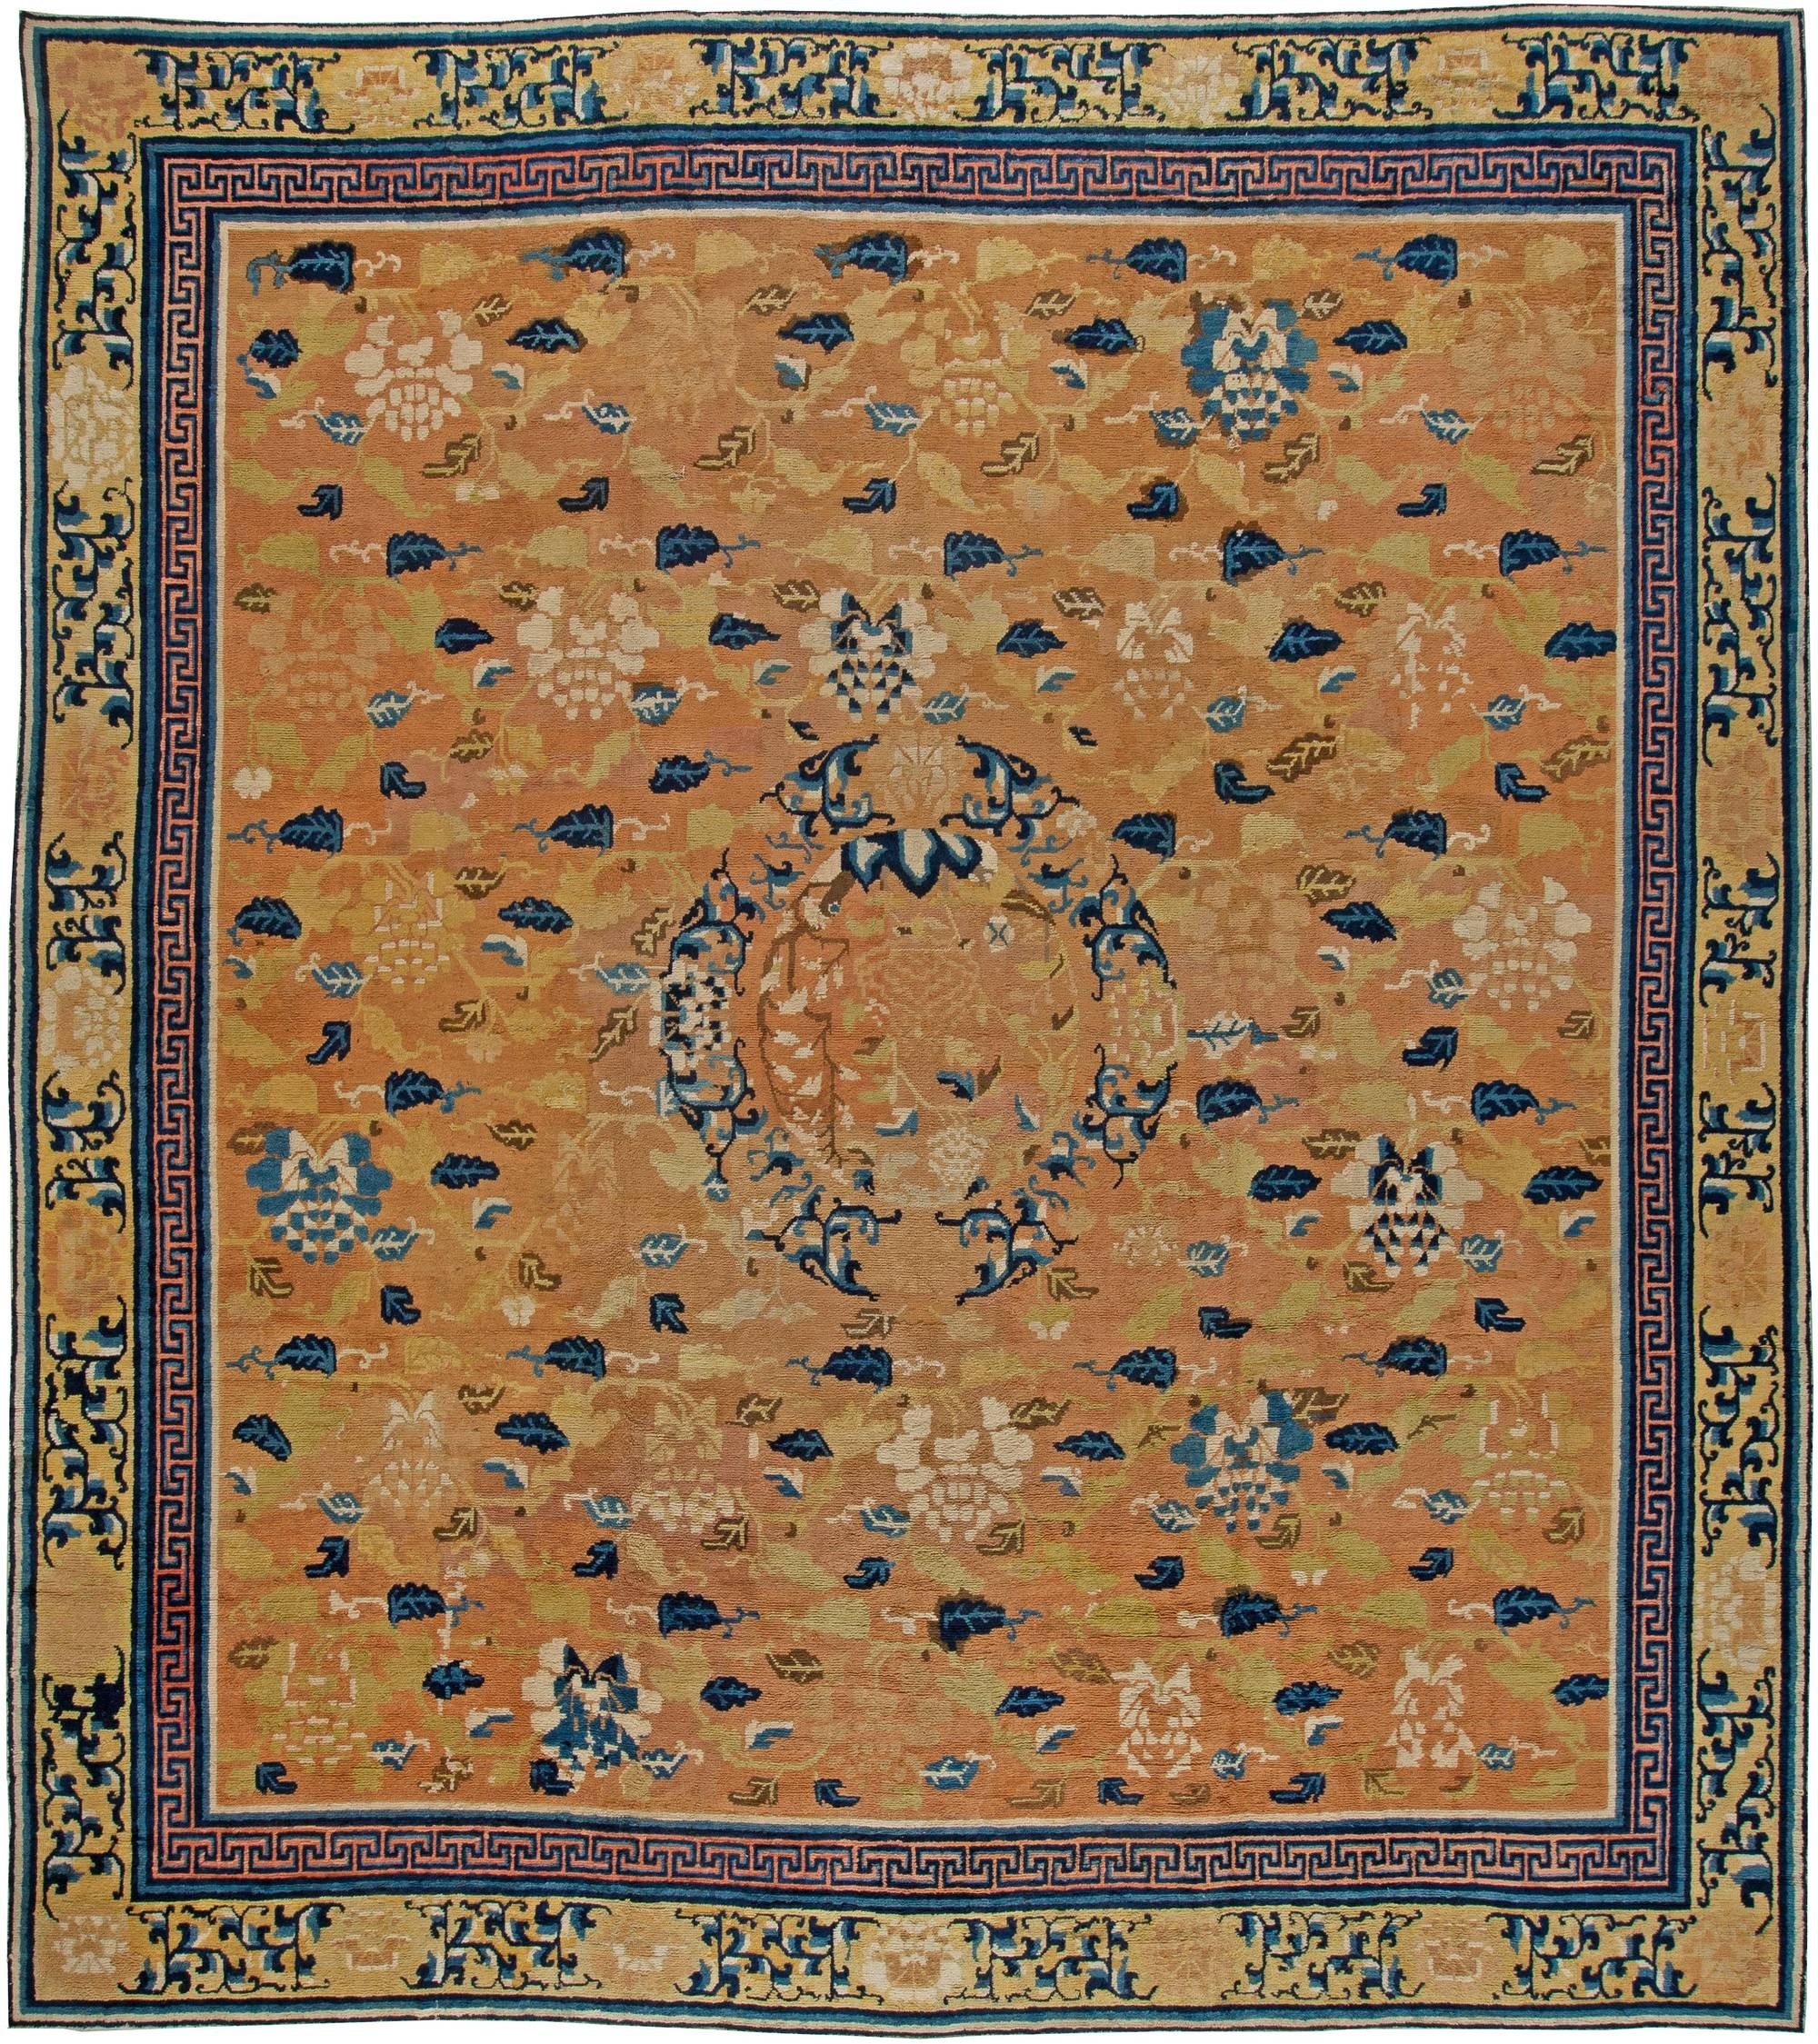 Chinese Rugs From Rug Collection Doris Leslie Blau Regarding Chinese Rugs (Image 12 of 15)